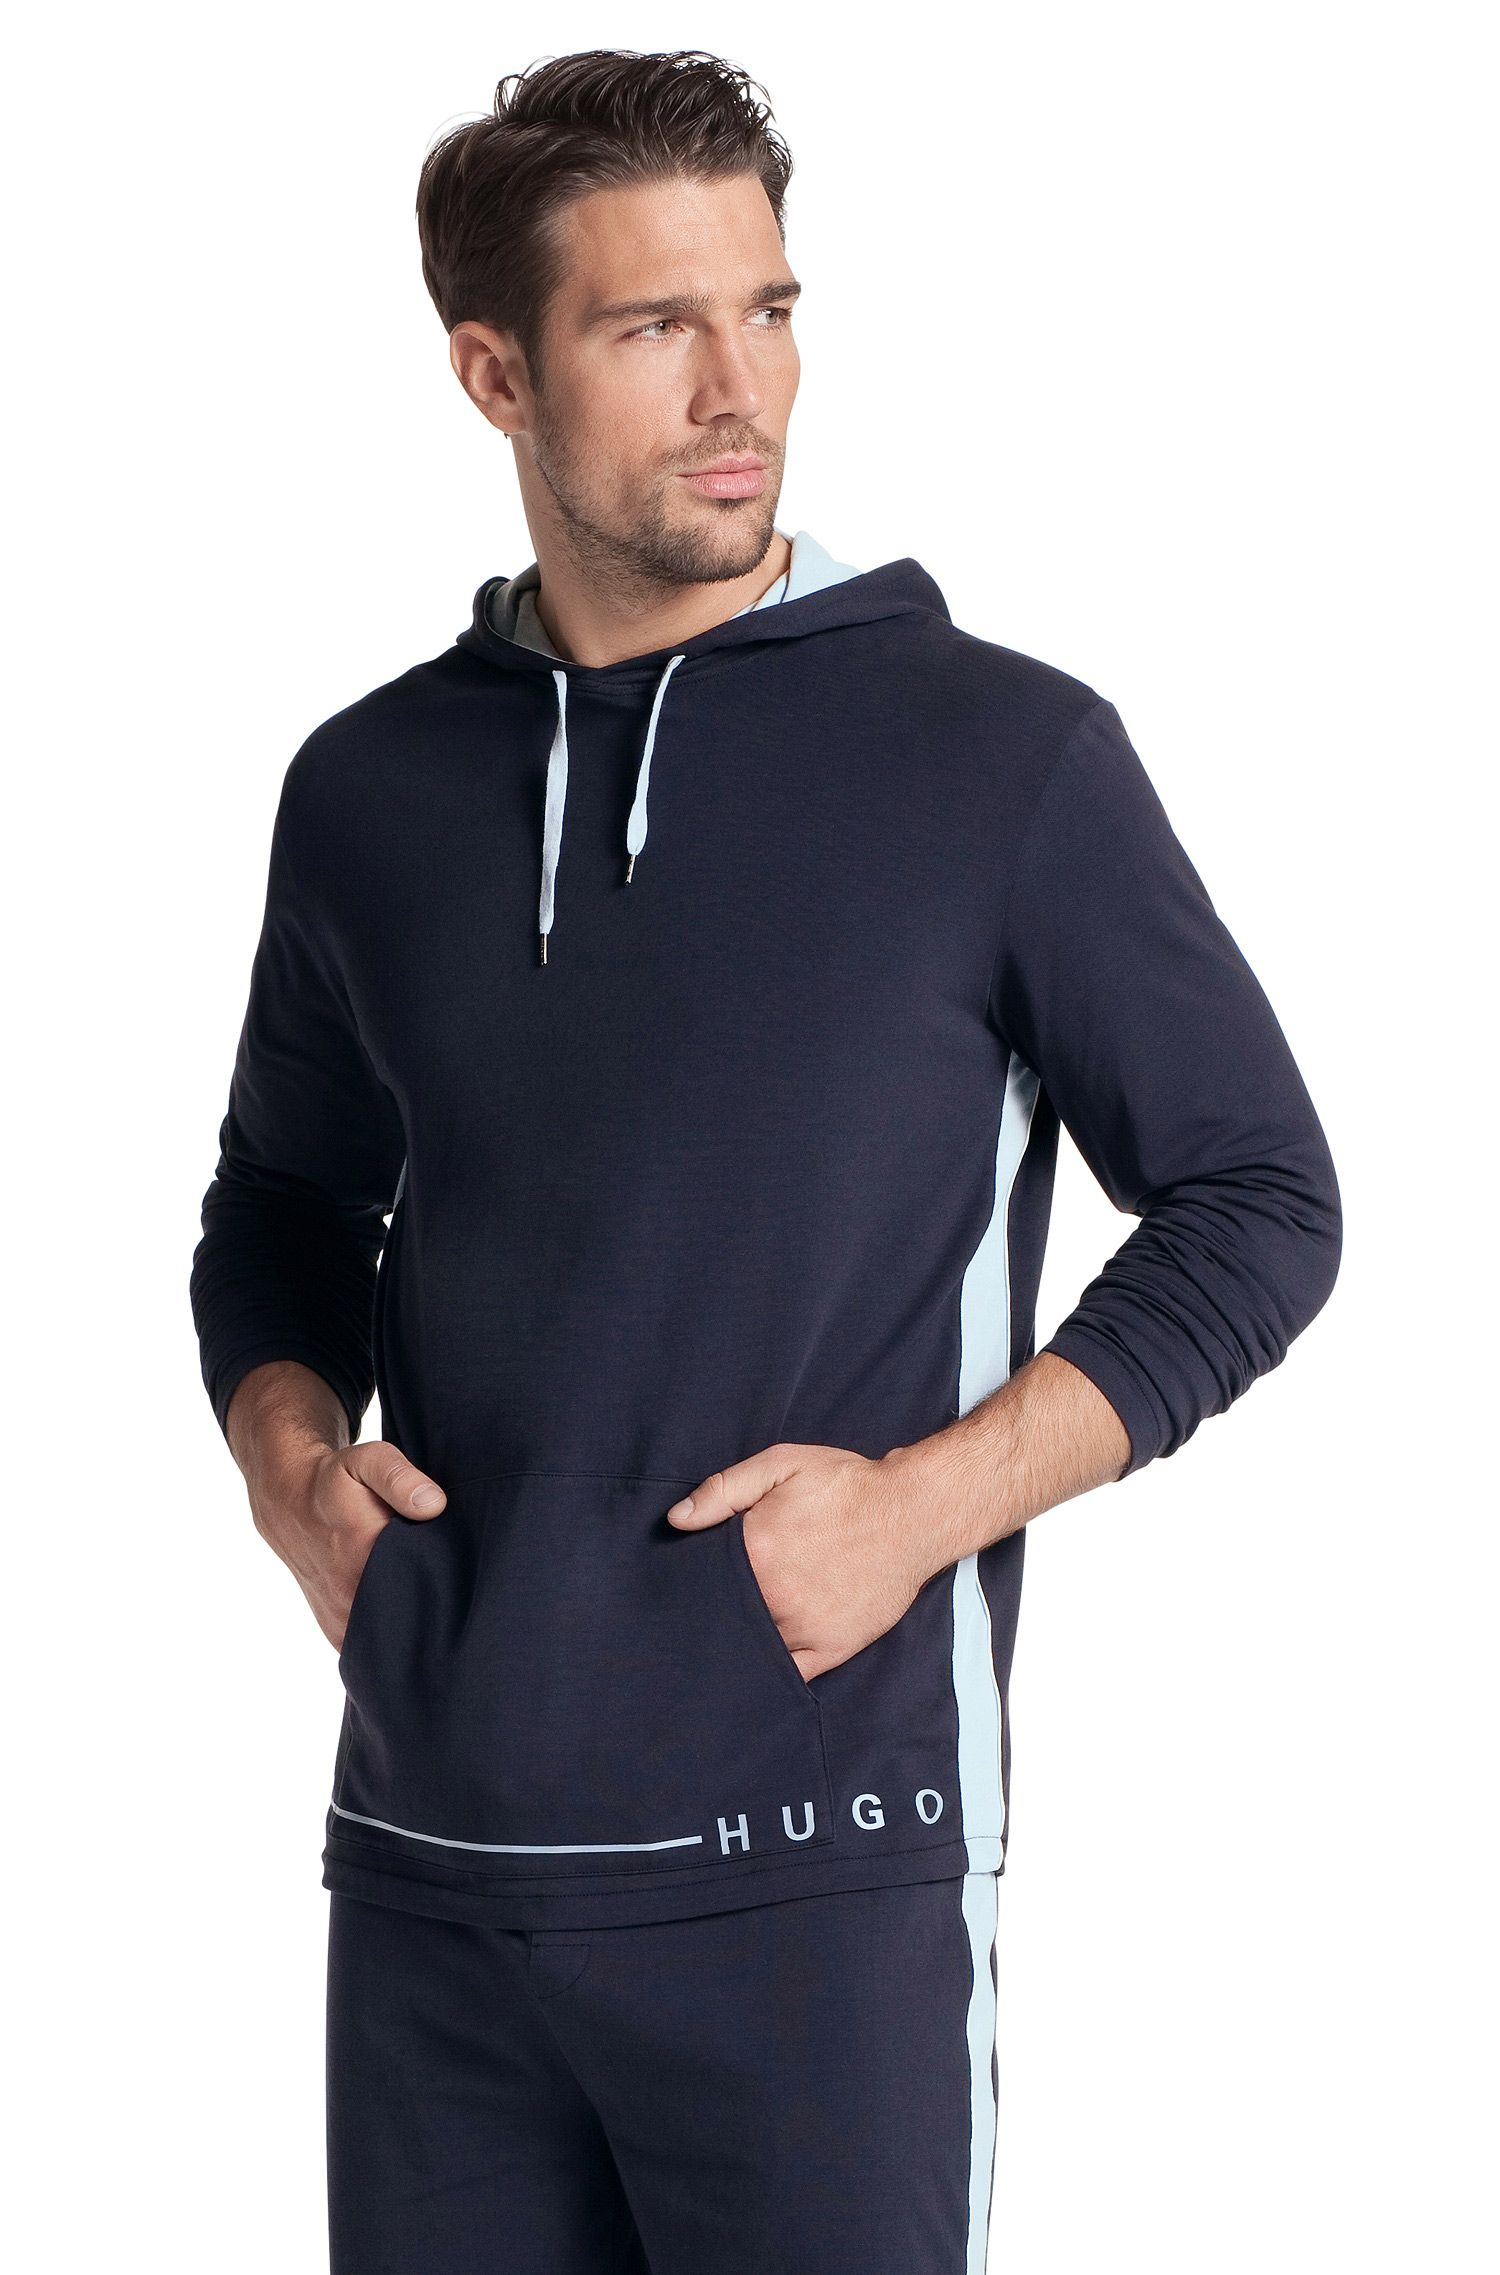 Sweatshirt ´Shirt Hooded LS BM` mit Kapuze